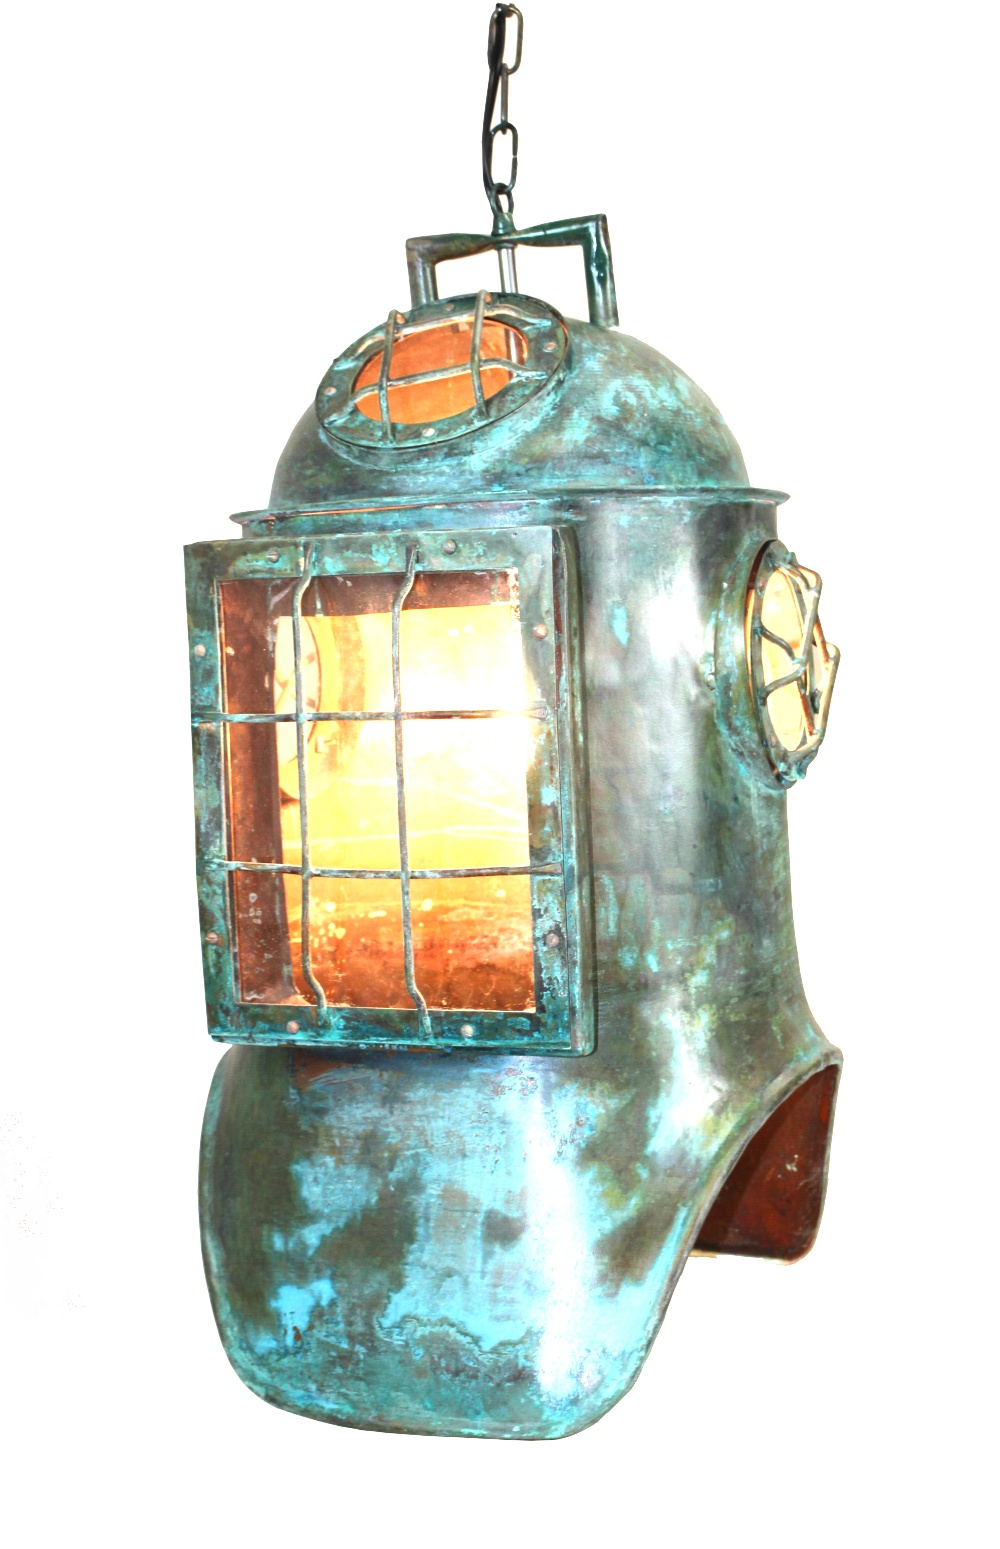 Antique replica divers helmet life size solid copper old nautical antique replica divers helmet life size solid copper old nautical pendant light mozeypictures Image collections